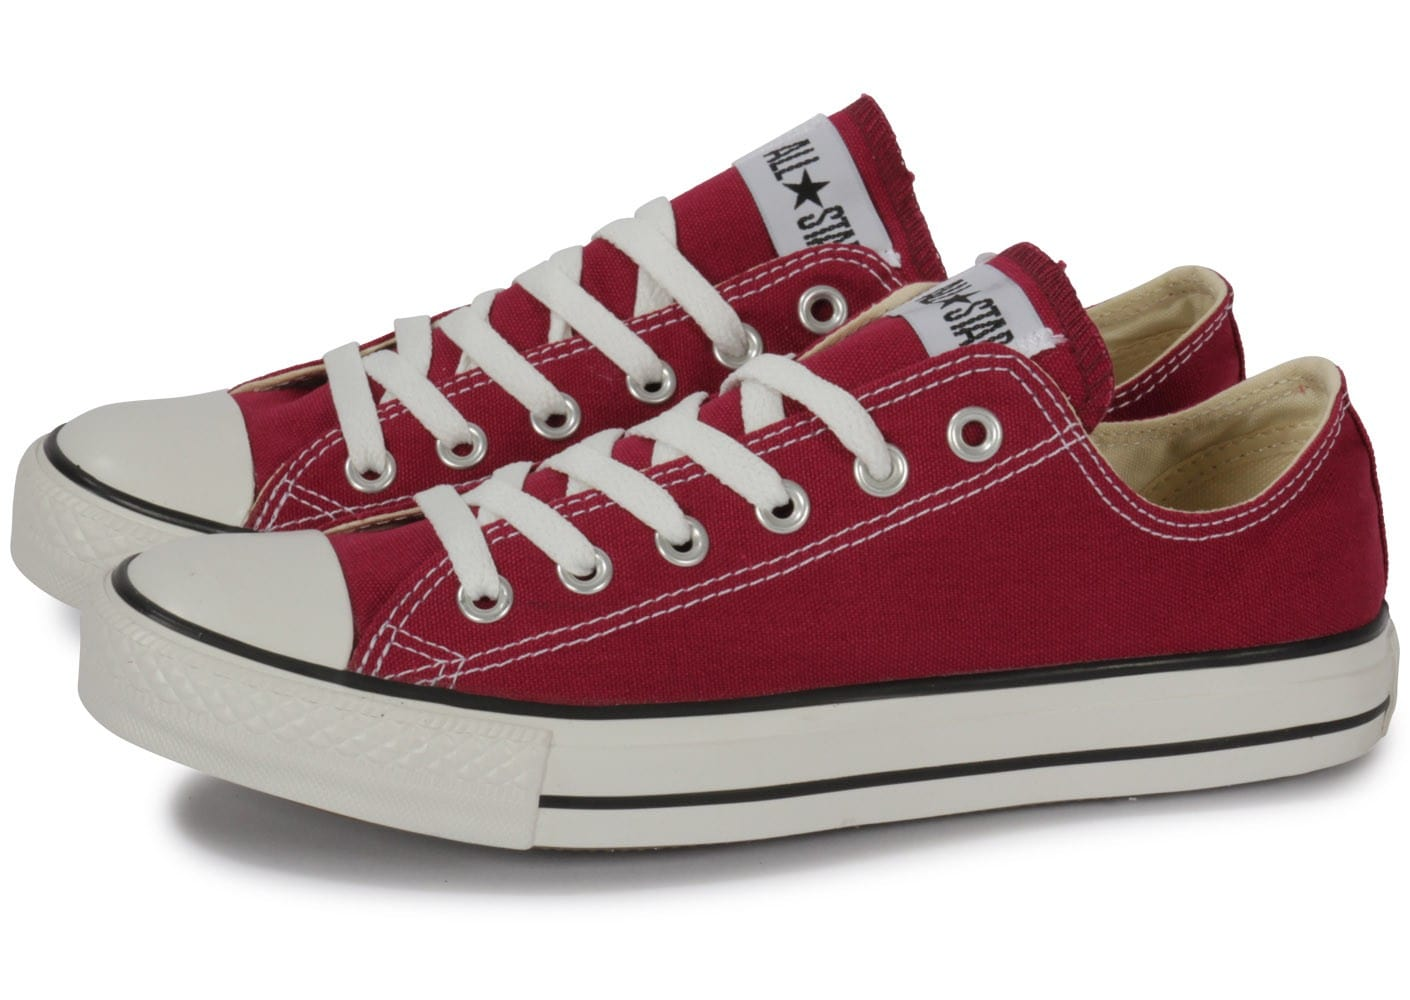 Converse Chuck Taylor All-star Low Bordeaux - Chaussures ...